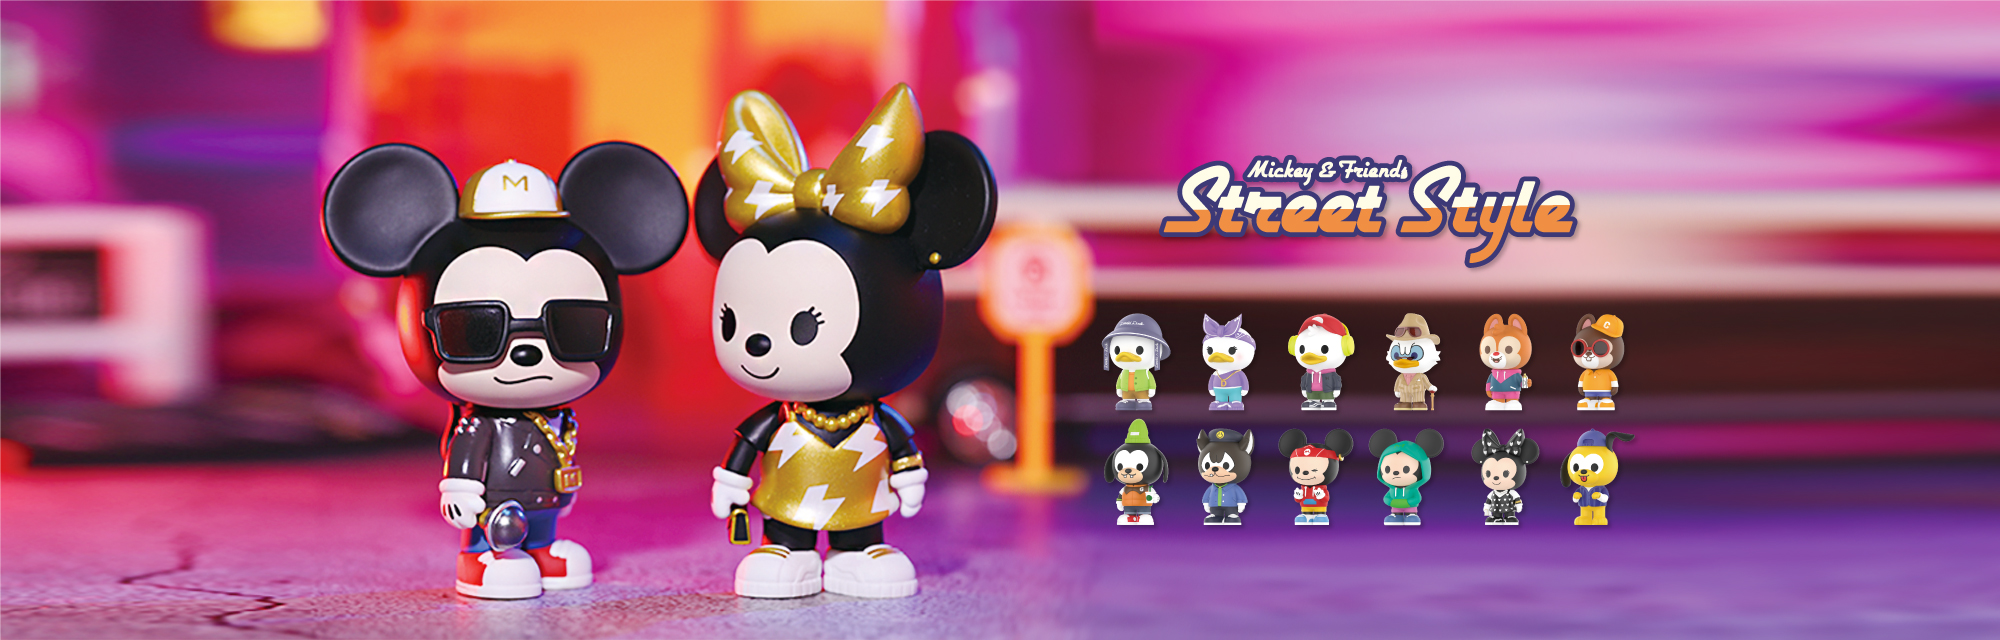 Disney Mickey Friends Street